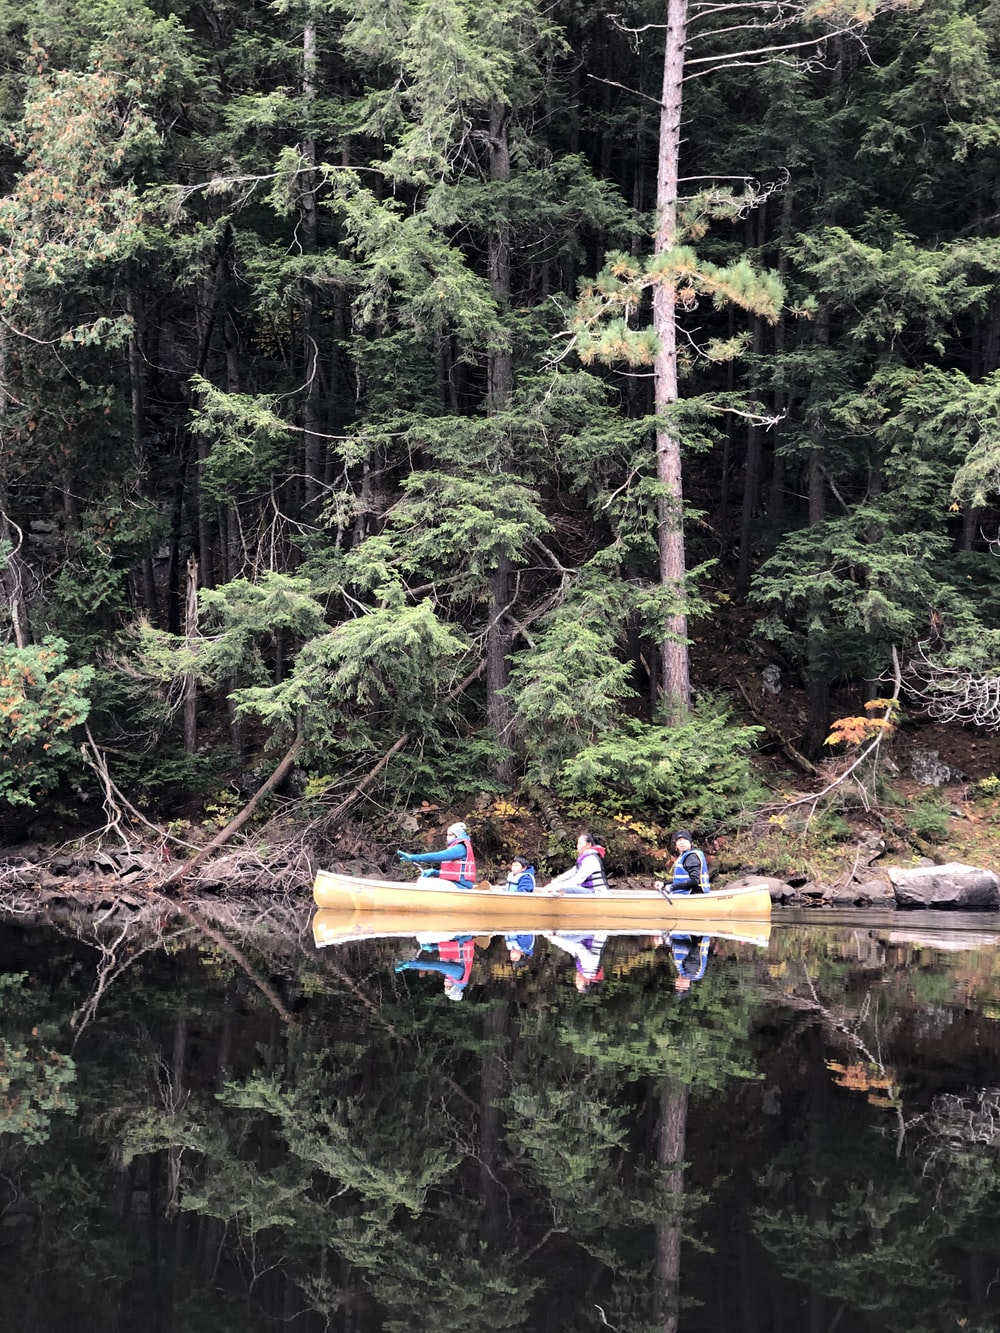 shallow focus photo of people riding boat on body of water